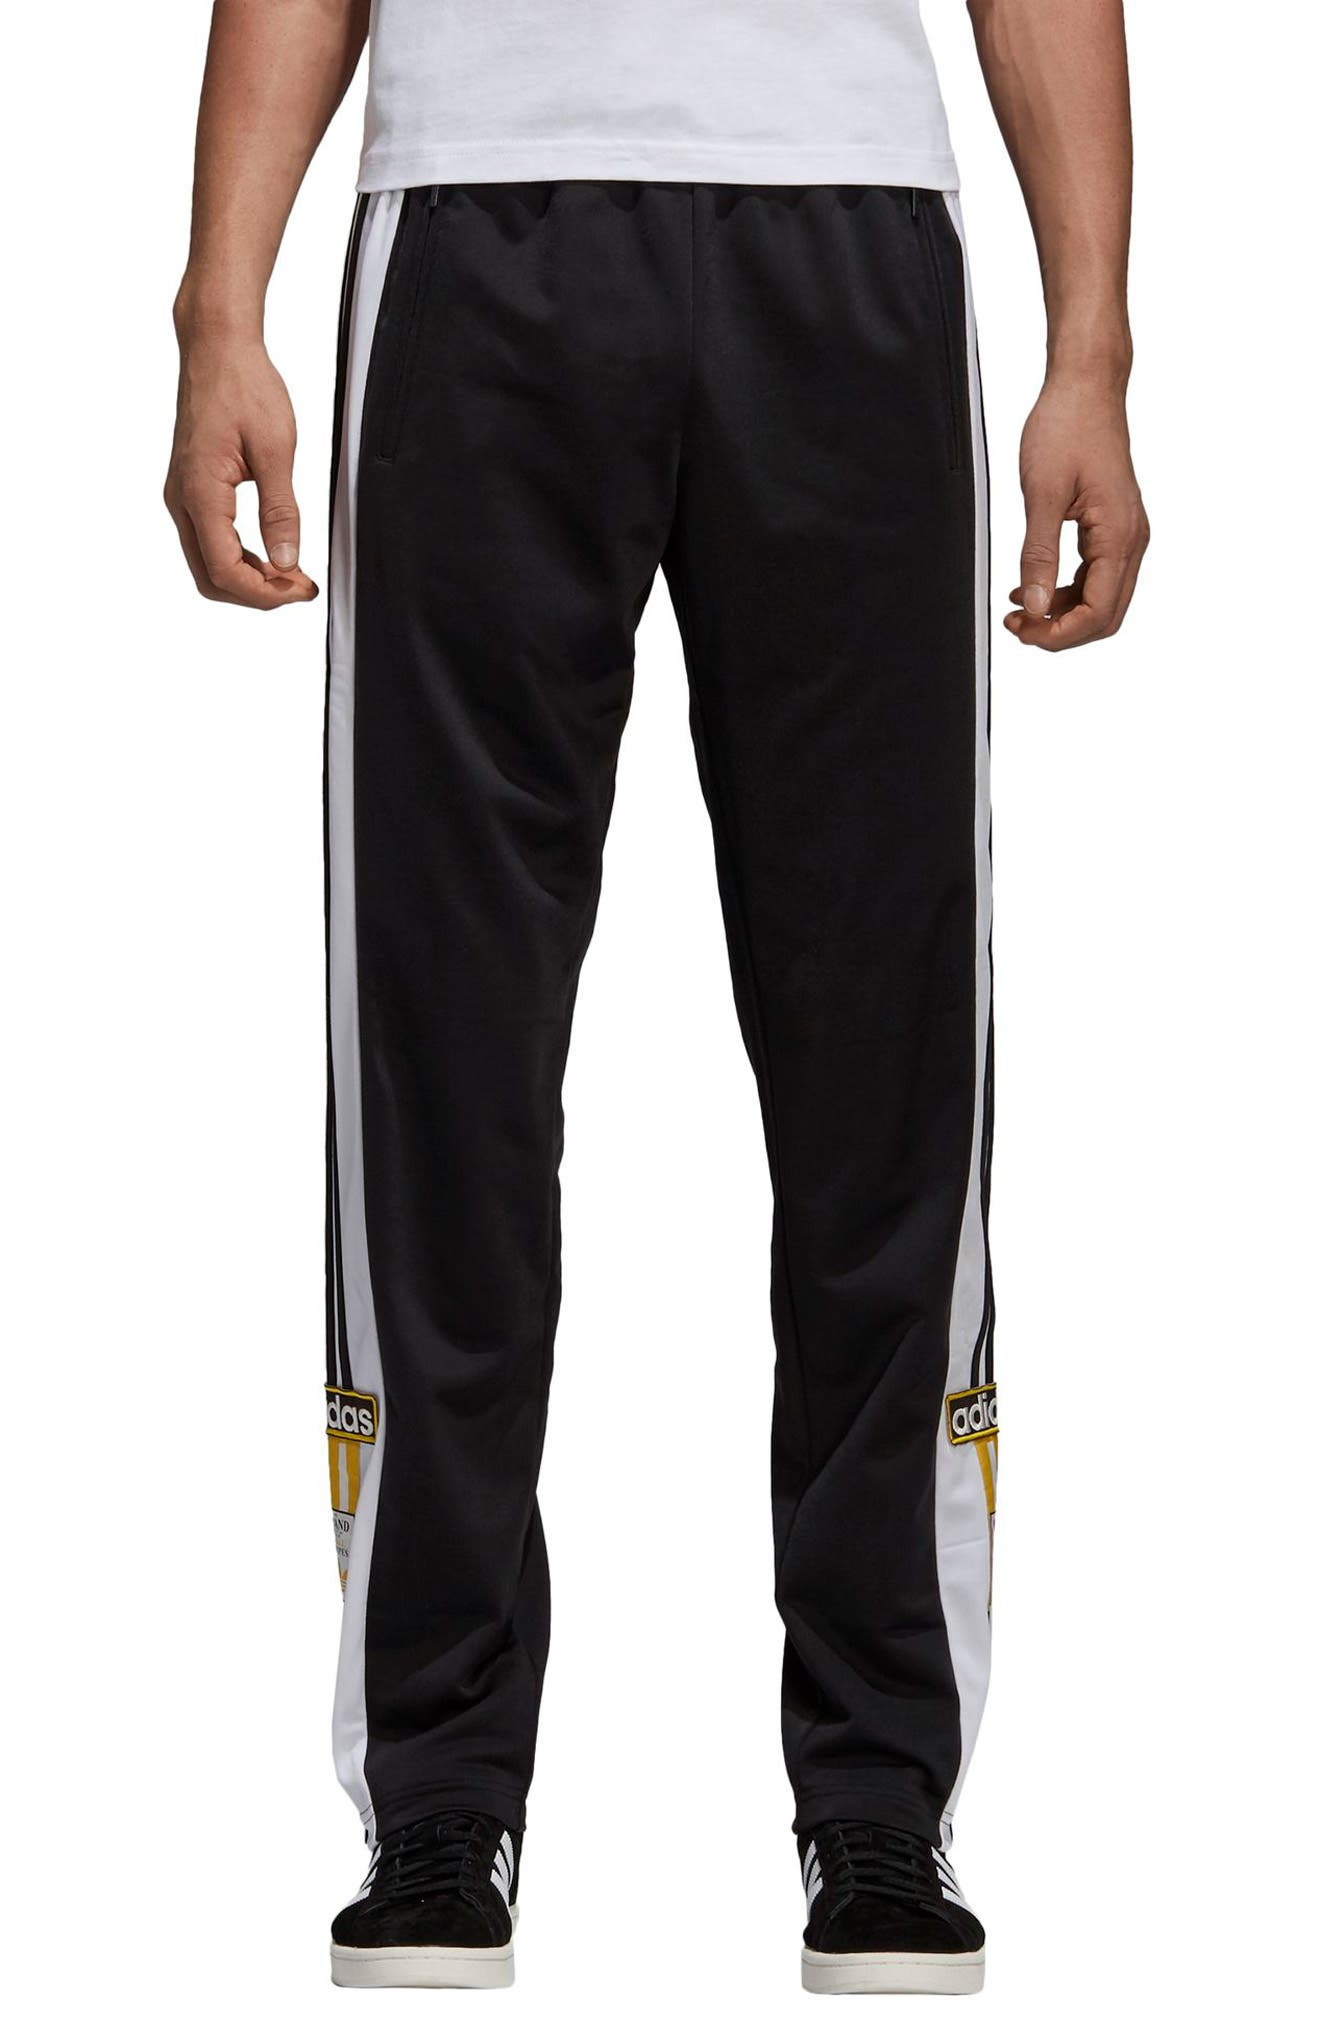 ADIDAS ORIGINALS Adibreak Track Pants, Main, color, 001